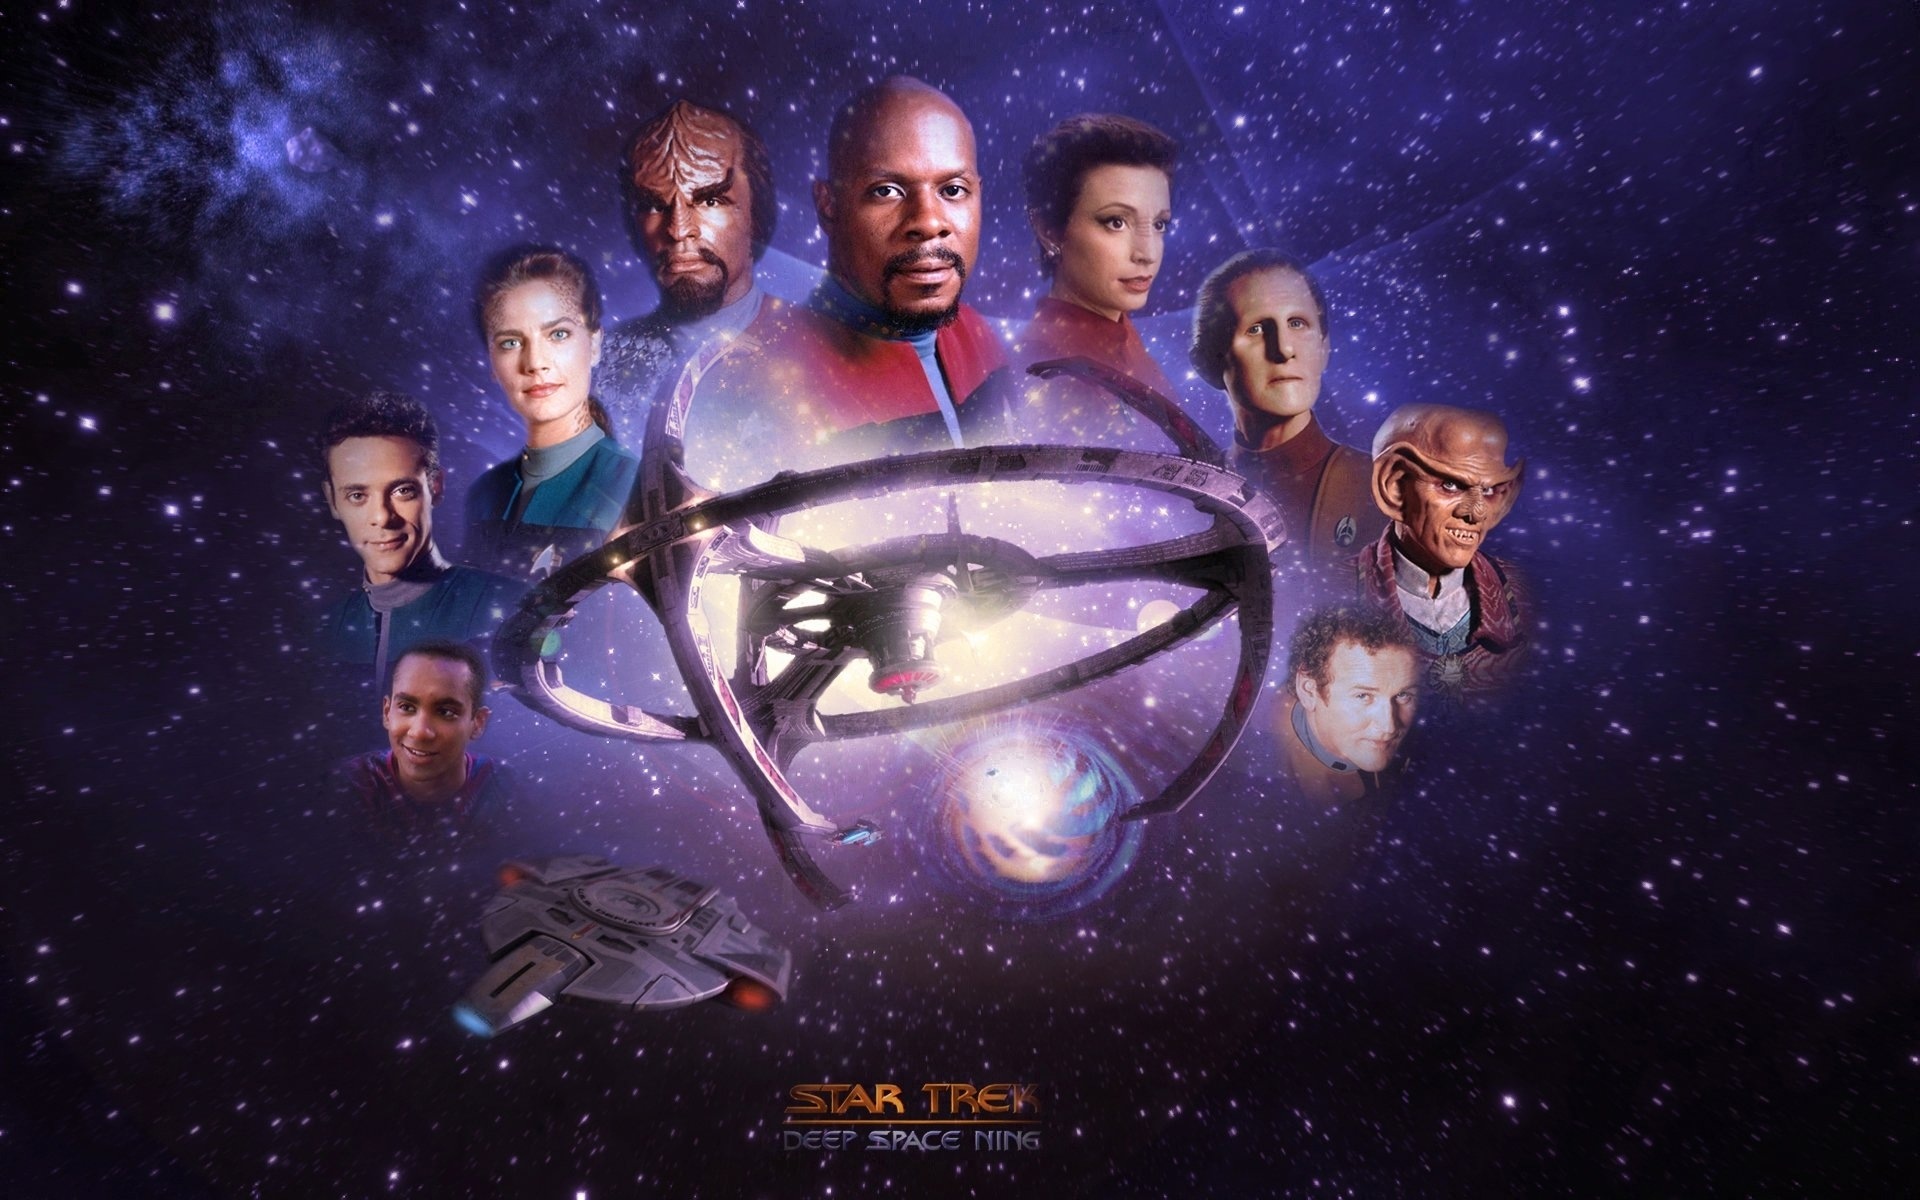 29 star trek: deep space nine hd wallpapers | background images